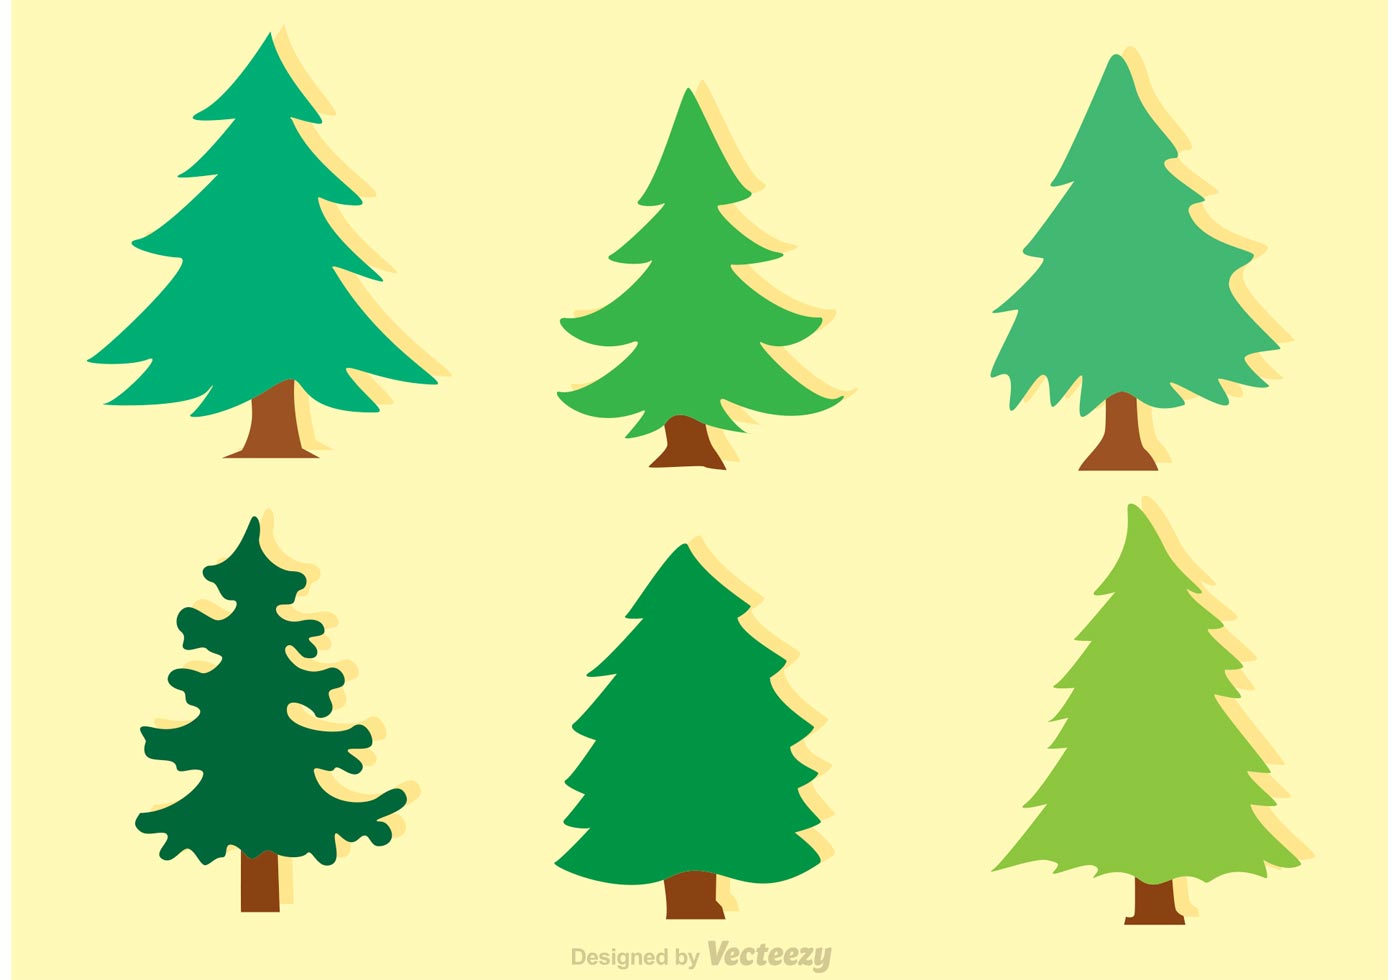 1400x980 Pine Tree Silhouette Vector Image Clipart Sky Use Of Ms Visio